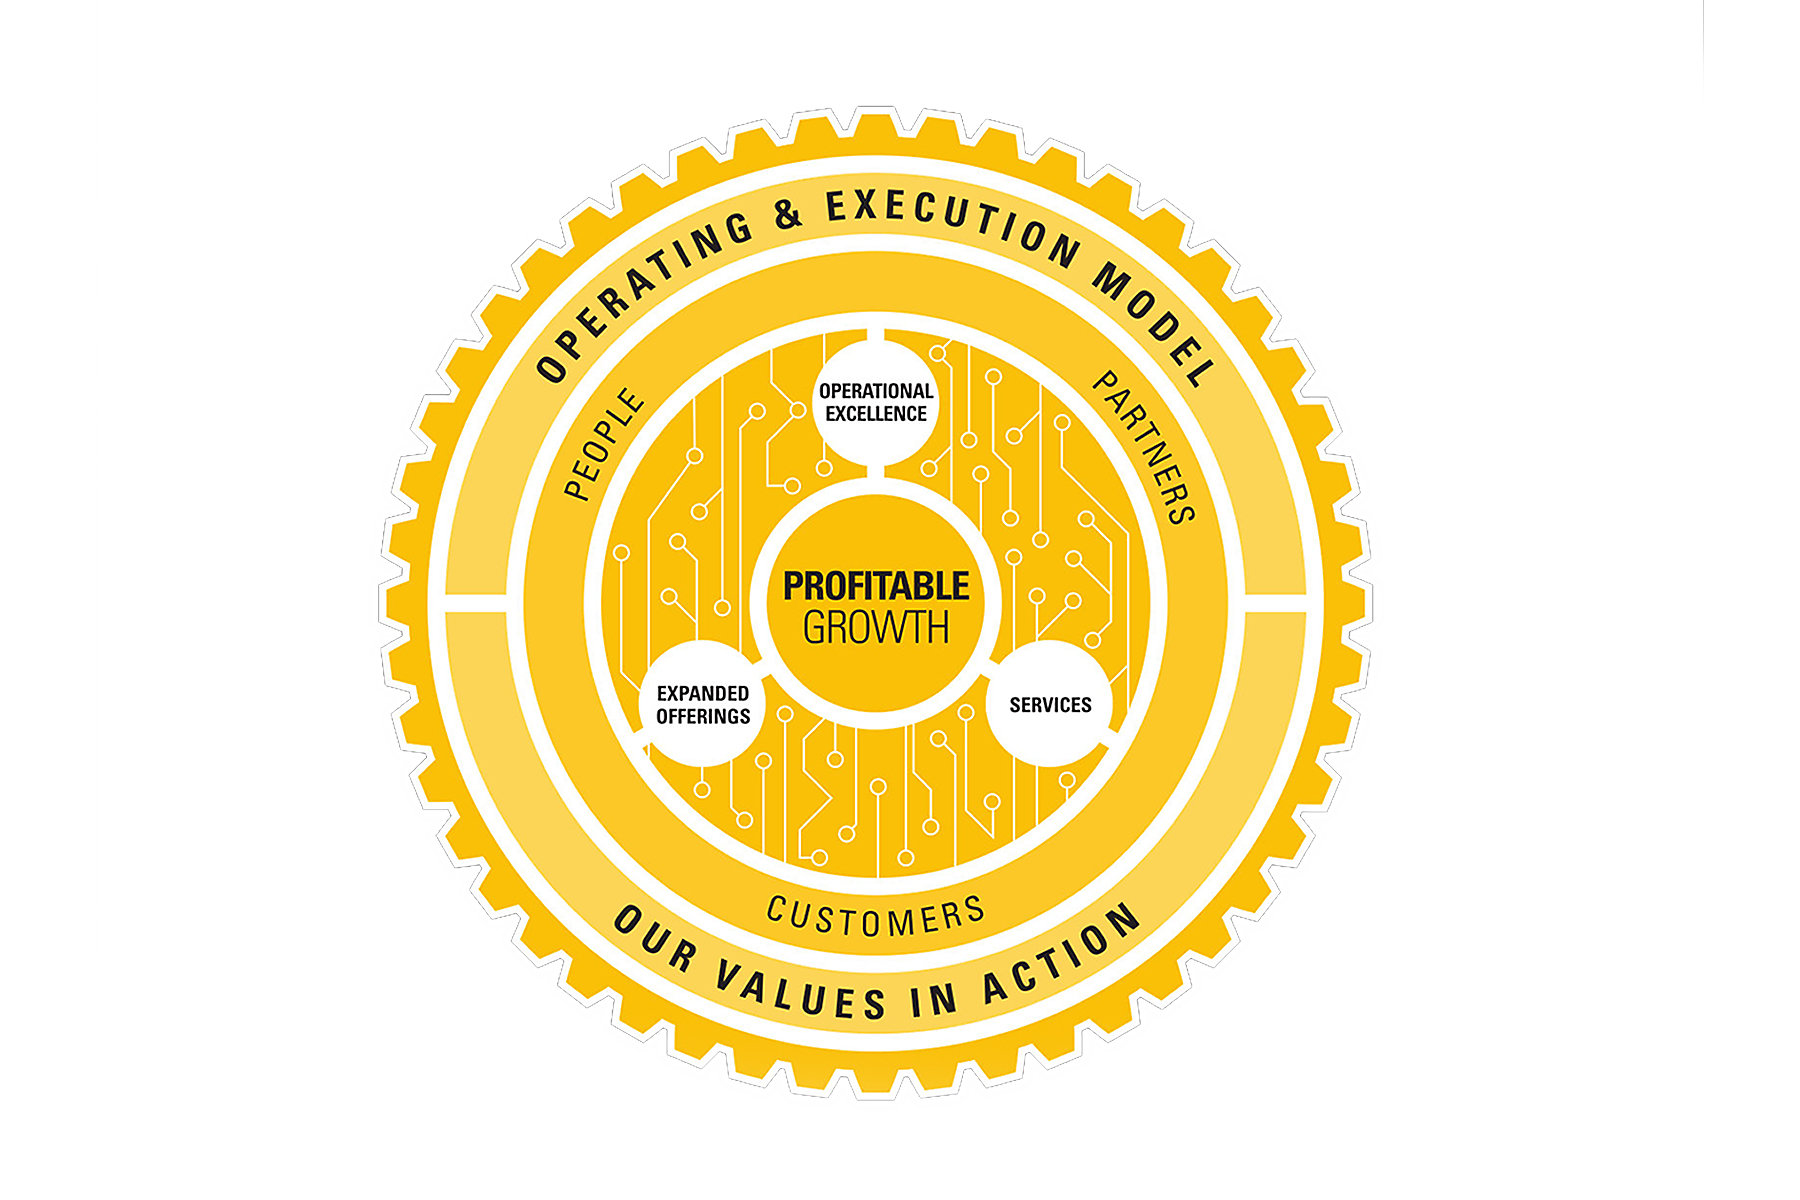 Operating & Execution Model